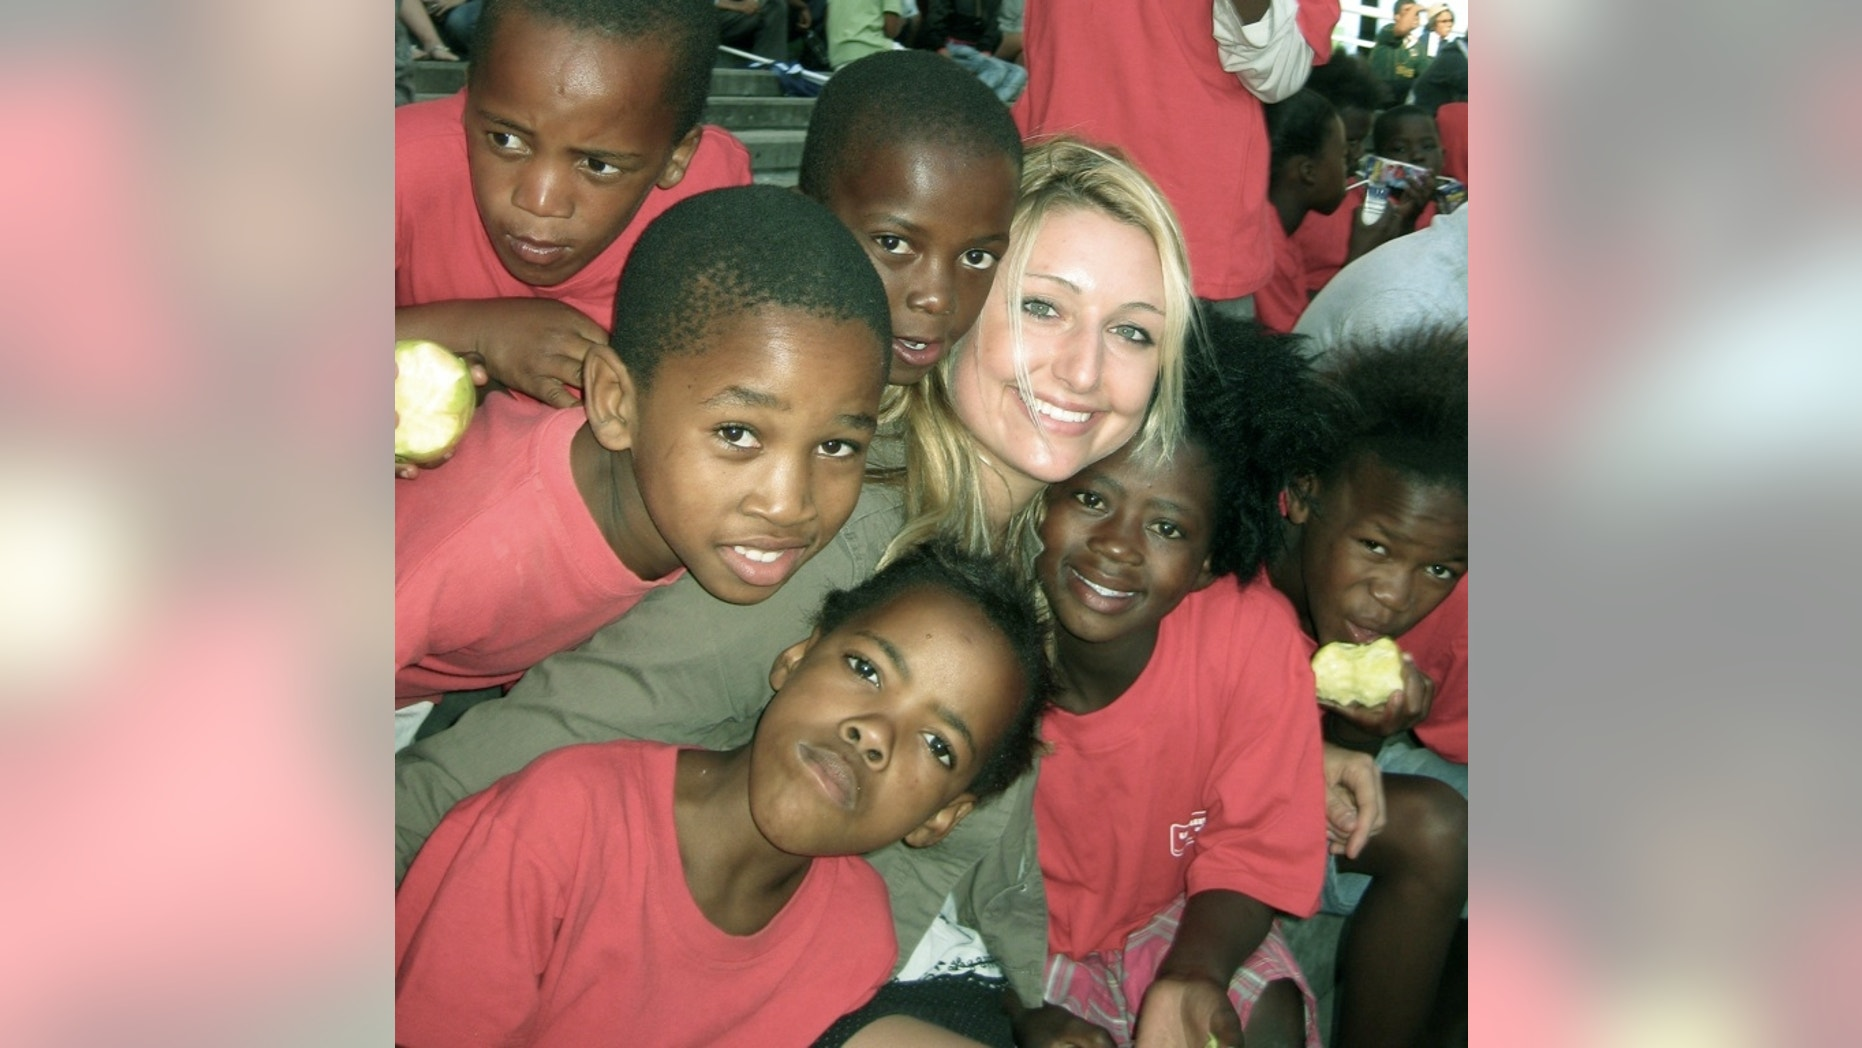 Whitney Johnson, surrounded by the children of Ubuntu.